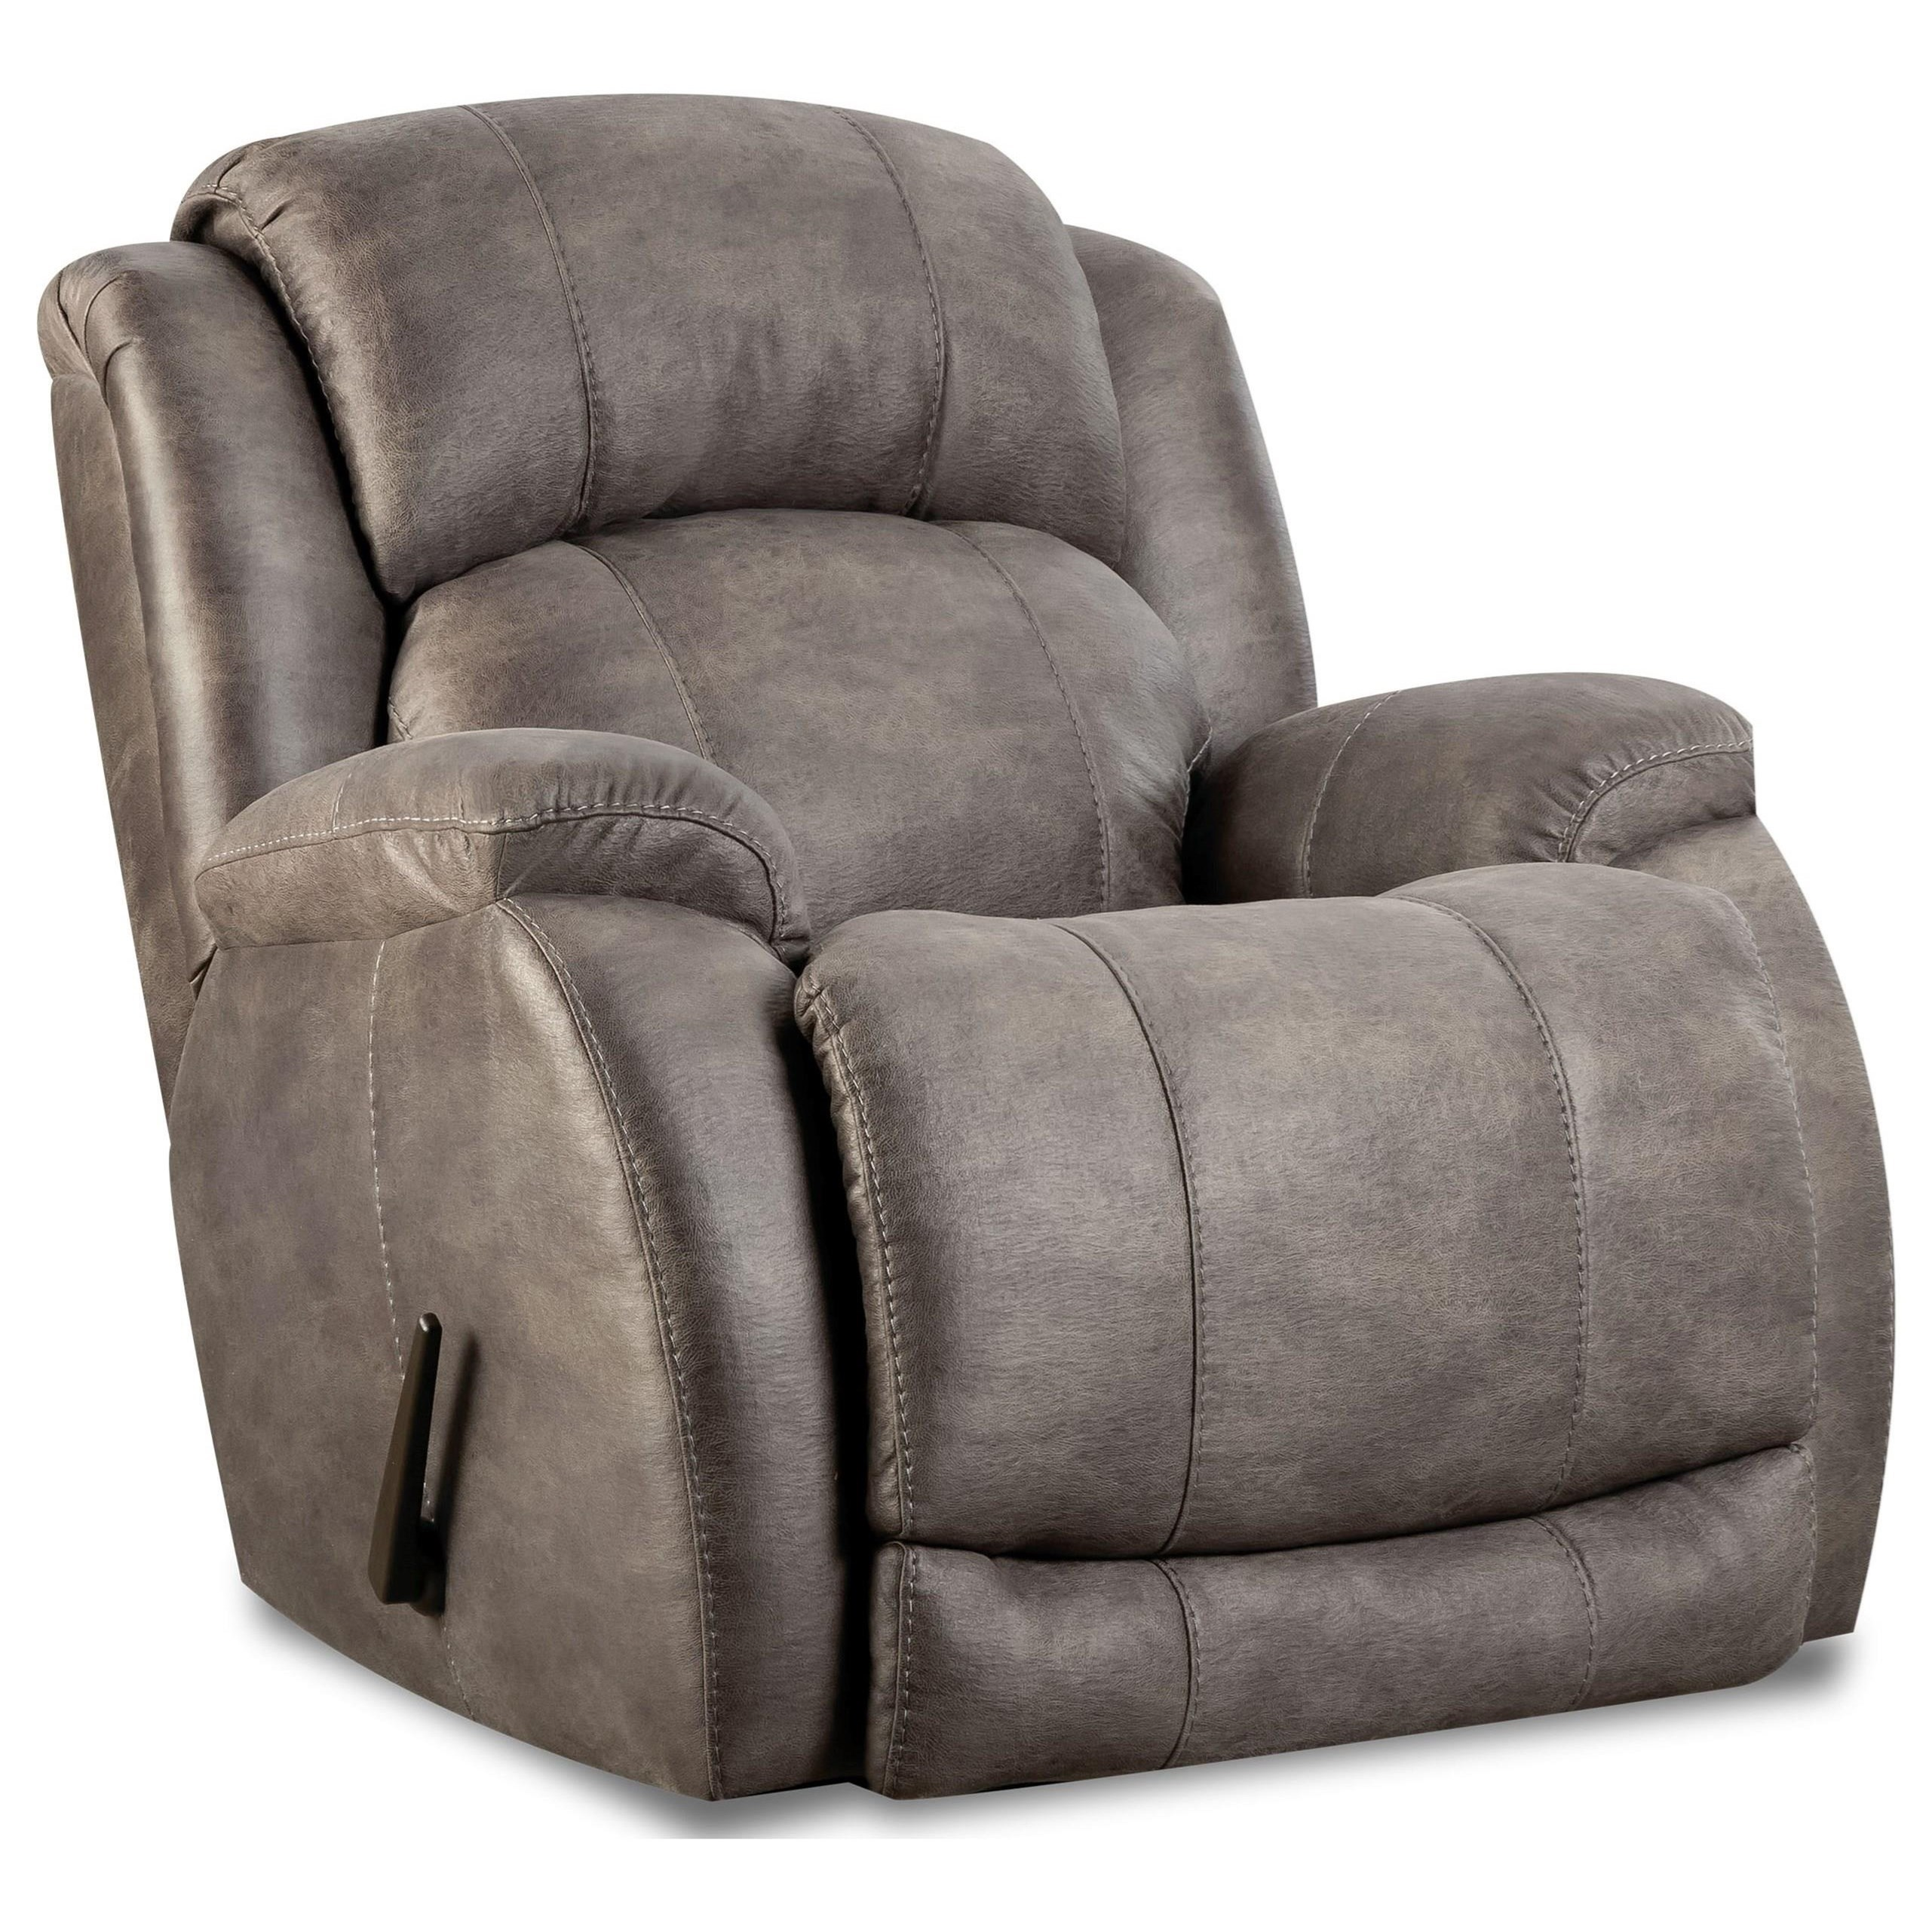 Denali Rocker Recliner by HomeStretch at Story & Lee Furniture